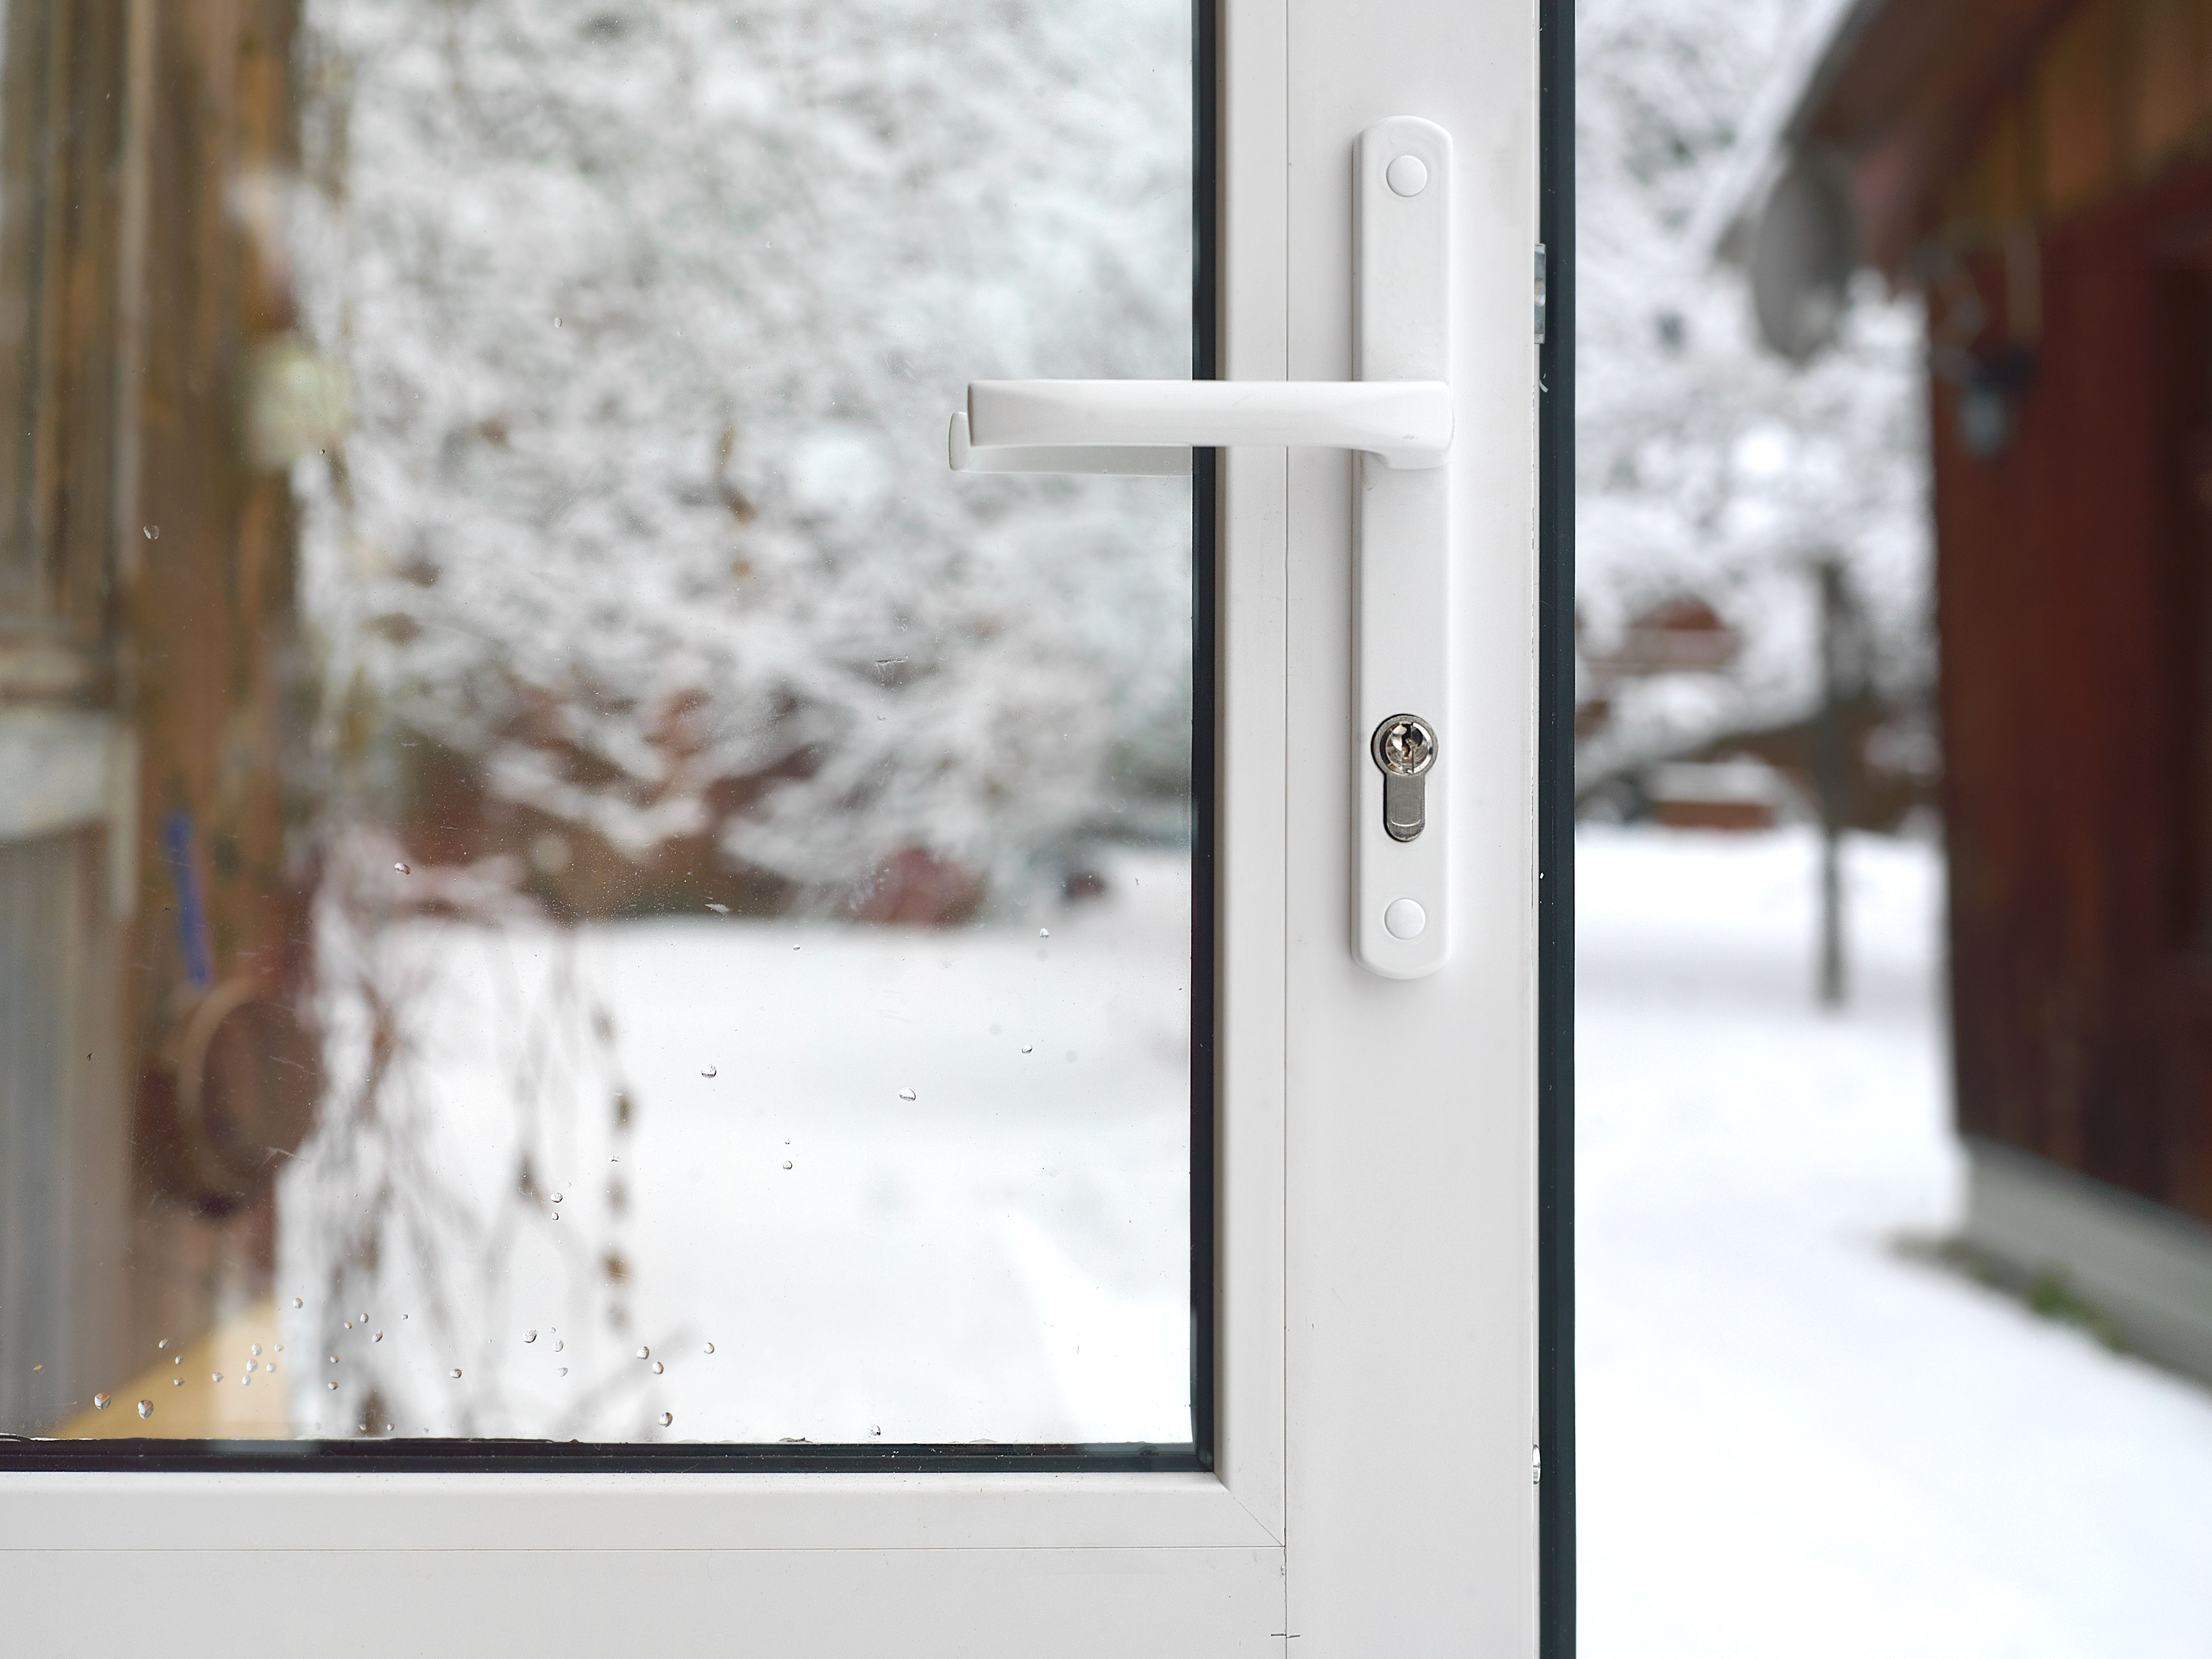 How To Replace Glass Pane On Larson Storm Doors Hunker Larson Storm Doors Storm Door Glass